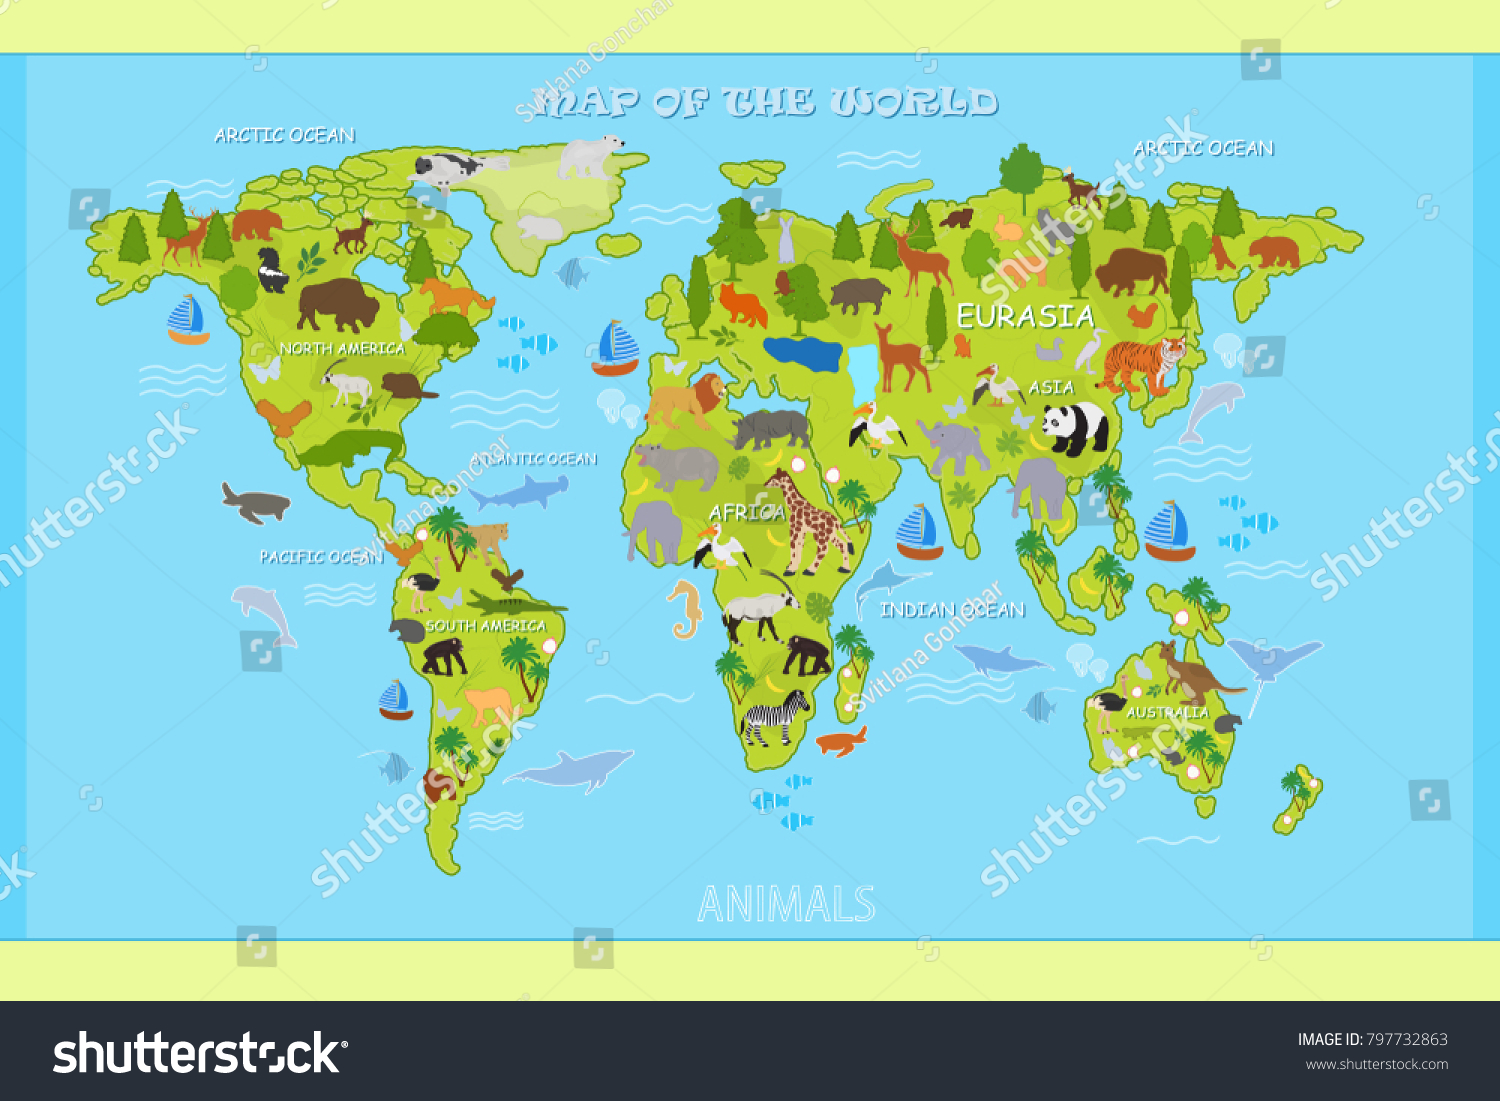 Map of the world with oceans vector map world animals stock vector map of the world with oceans vector map world animals plants stock vector 797732863 shutterstock gumiabroncs Gallery